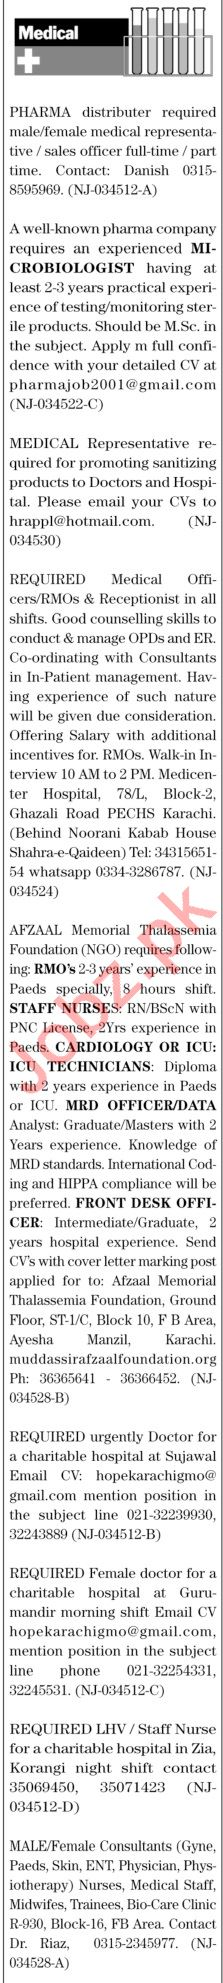 The News Sunday Classified Ads 14th Feb 2021 Medical Staff